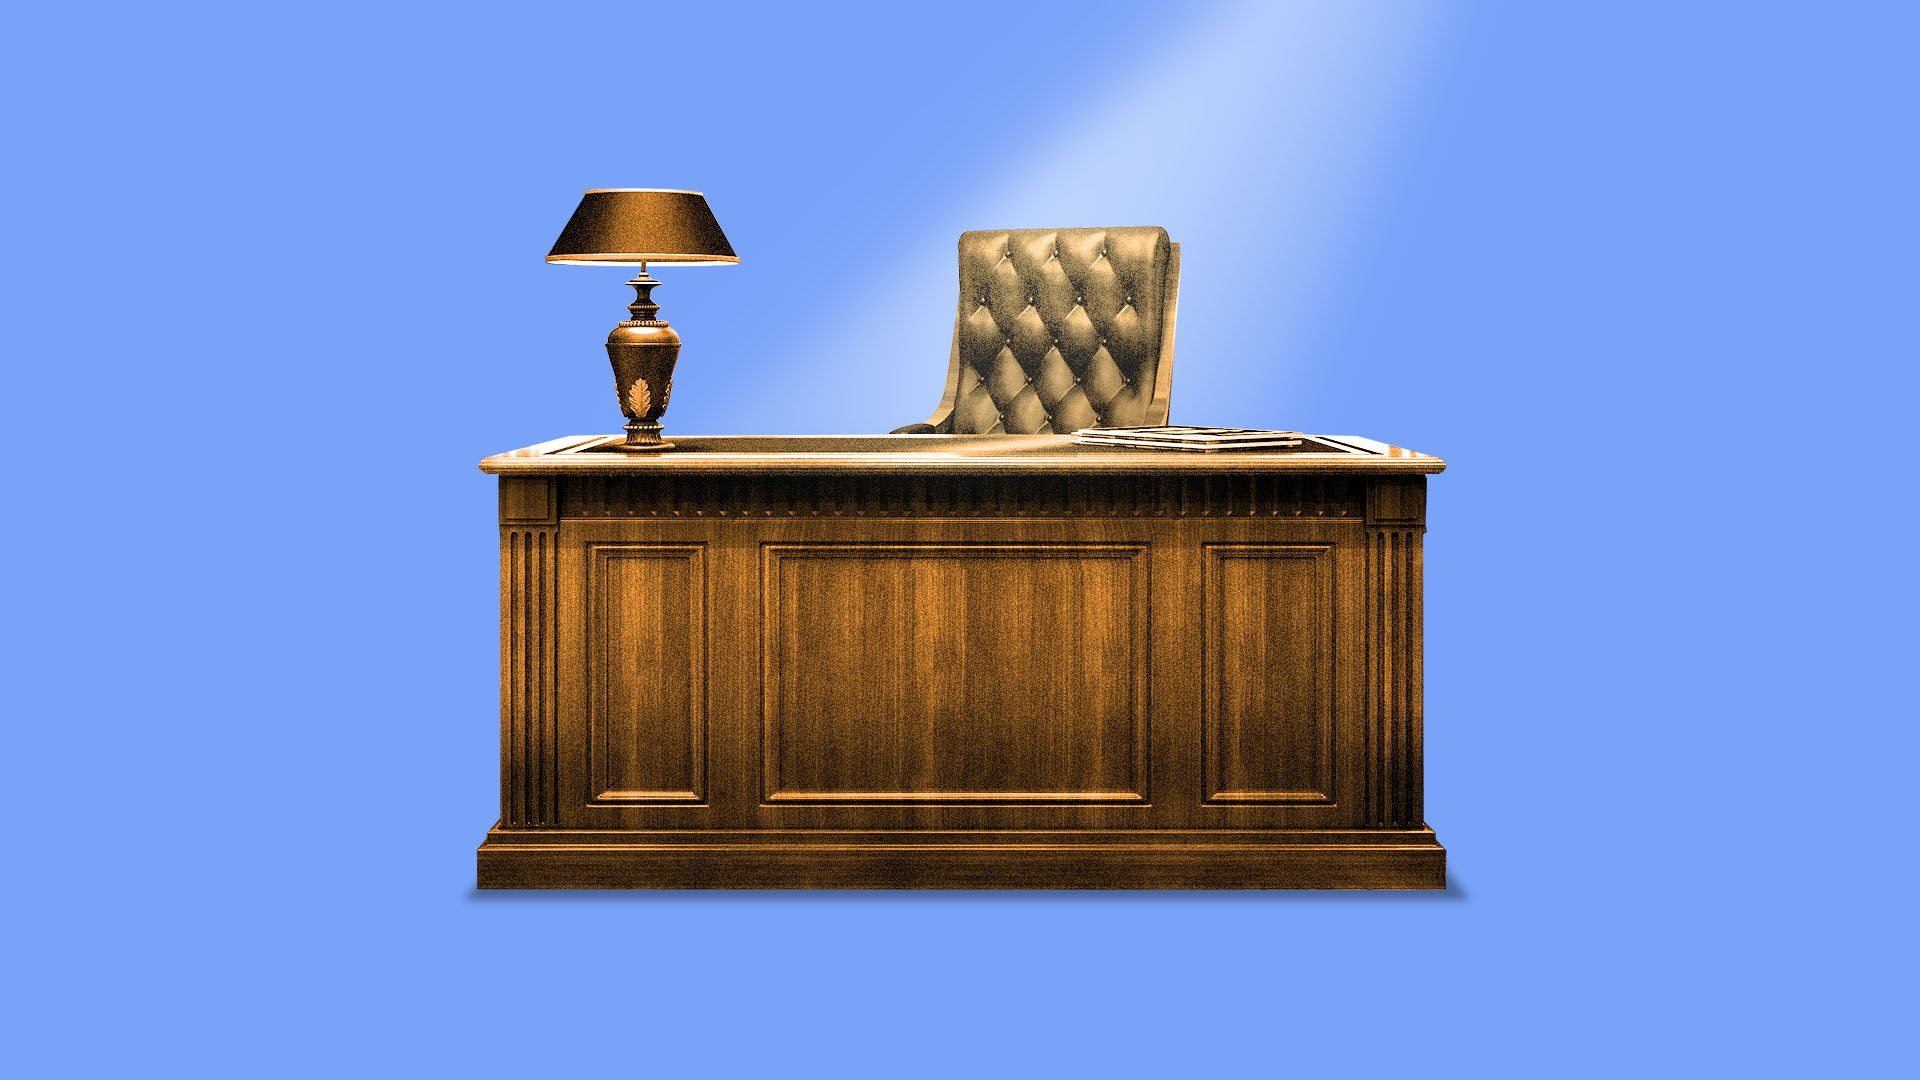 Illustration of an empty executive's desk with a light shining down from above.